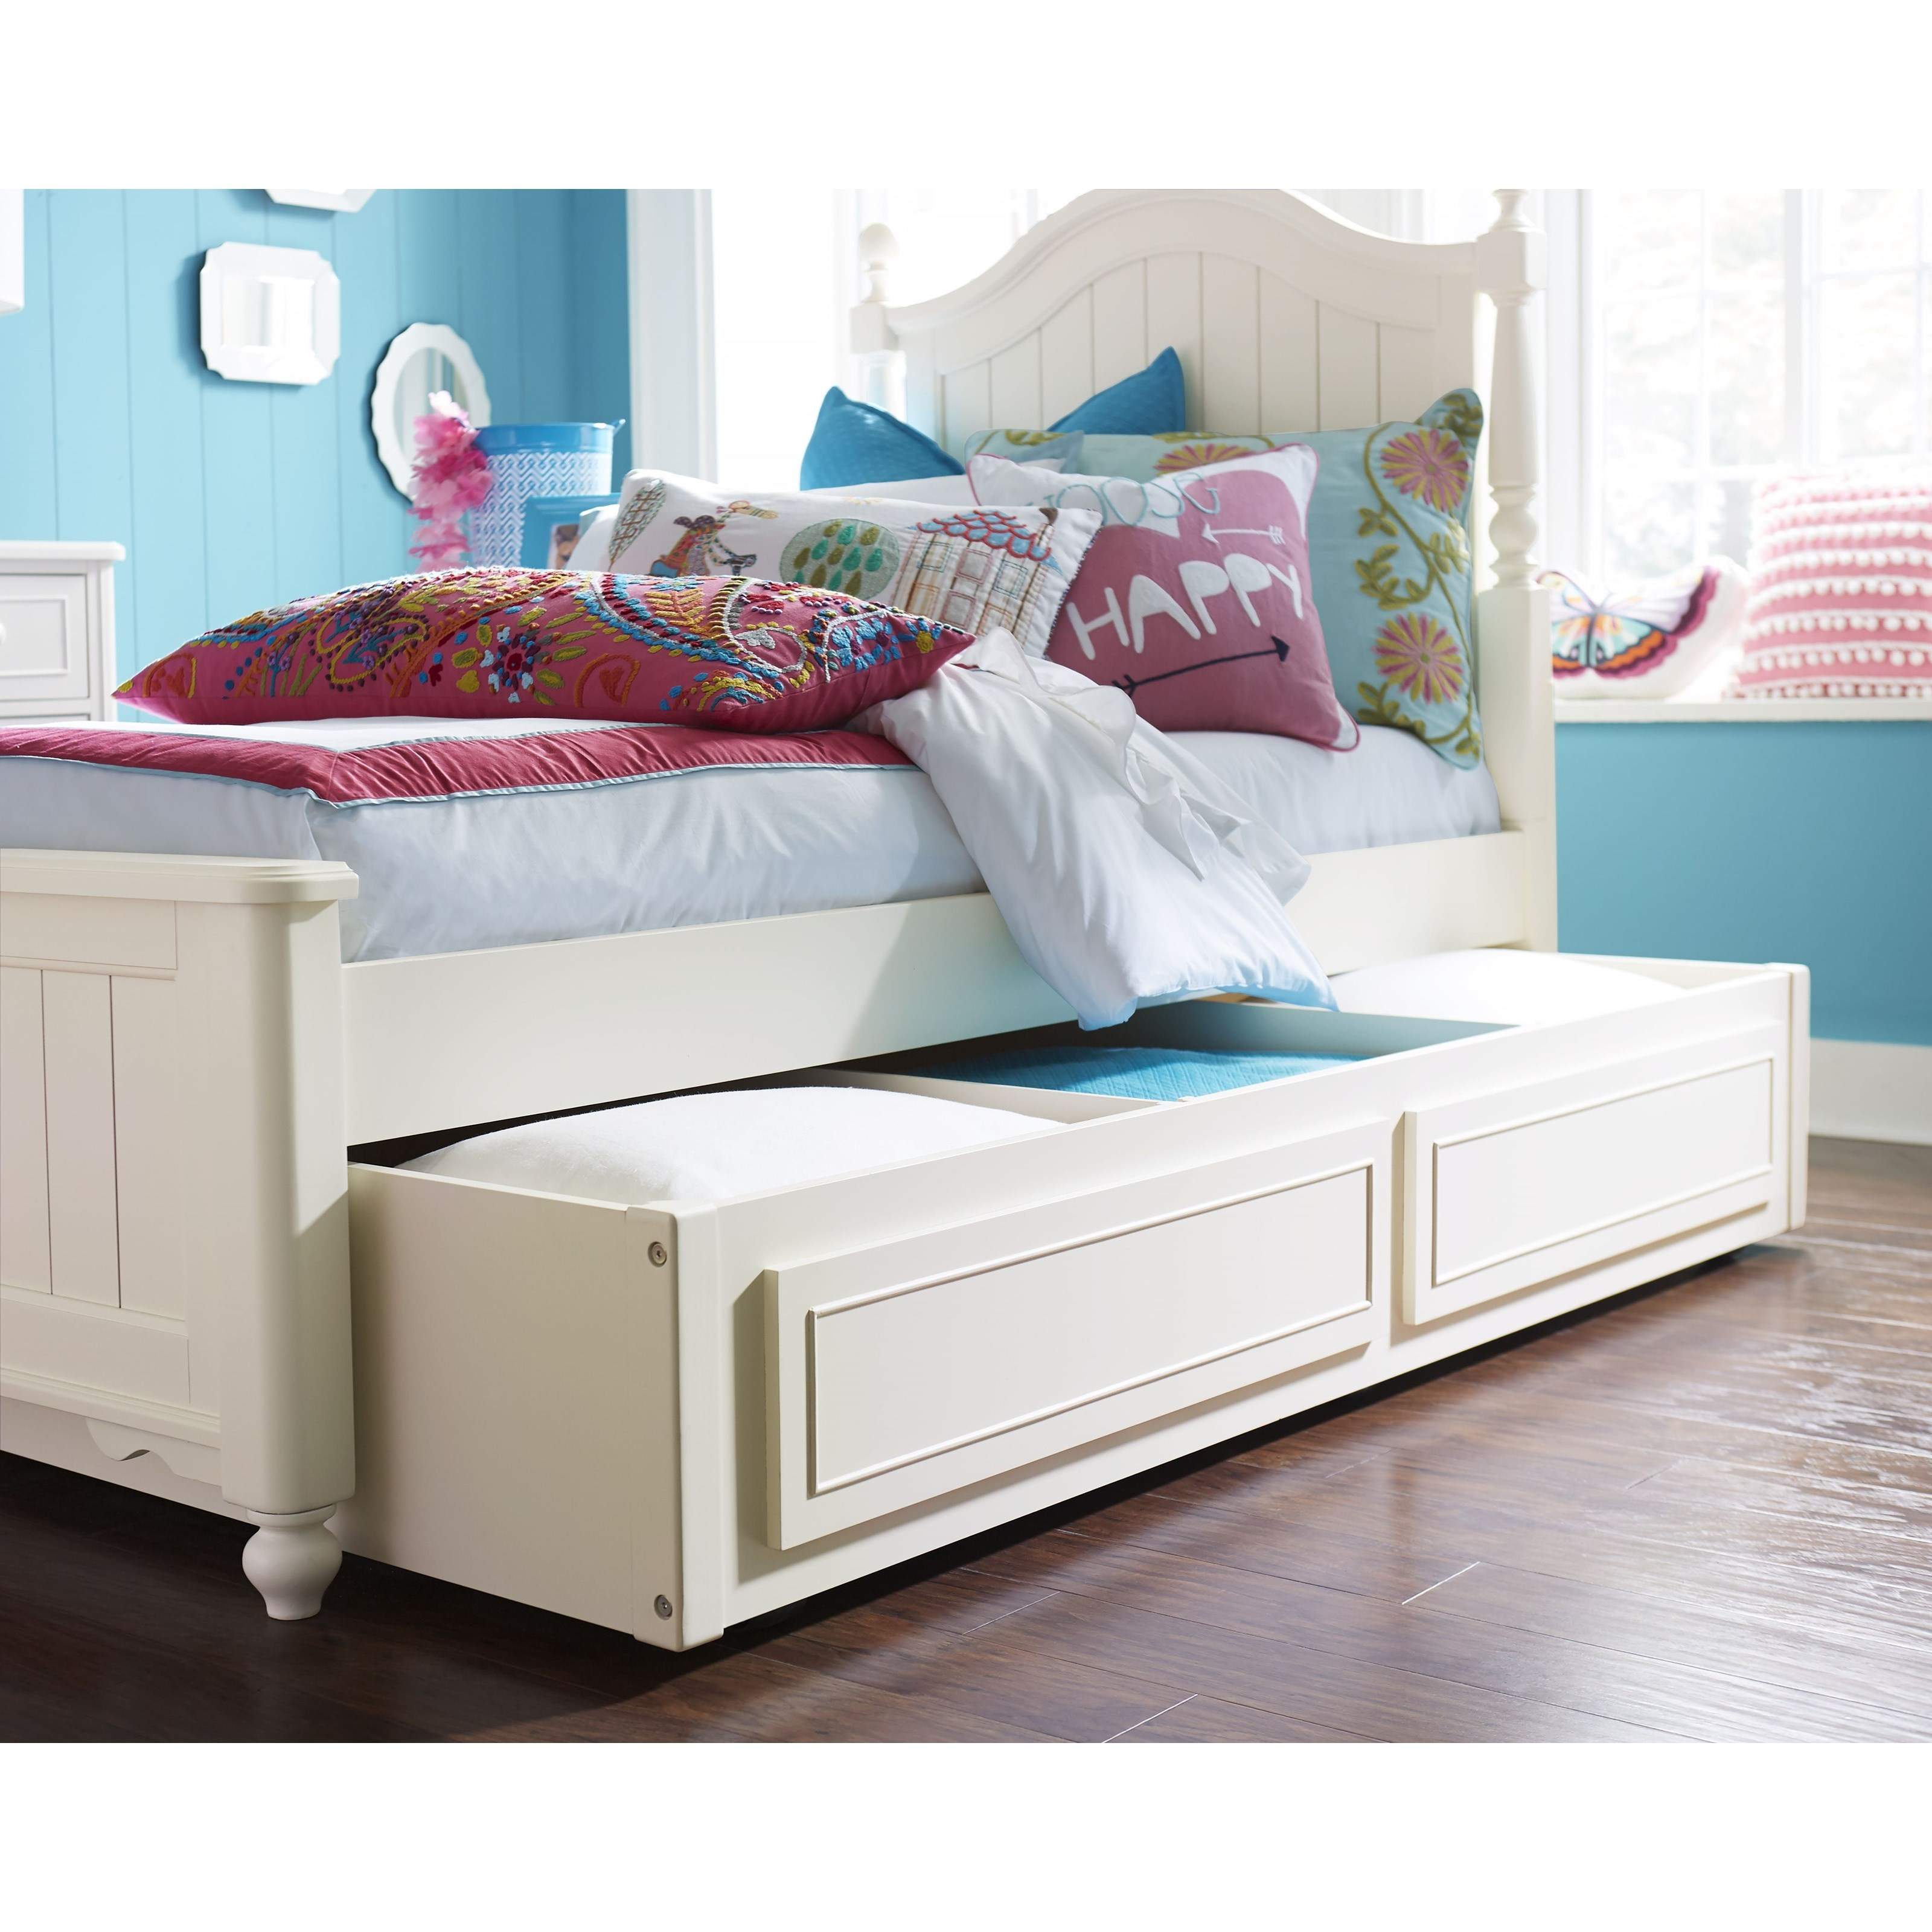 Legacy classic kids summerset twin bed with trundle storage drawer dunk bright furniture - Kids twin beds with storage drawers ...